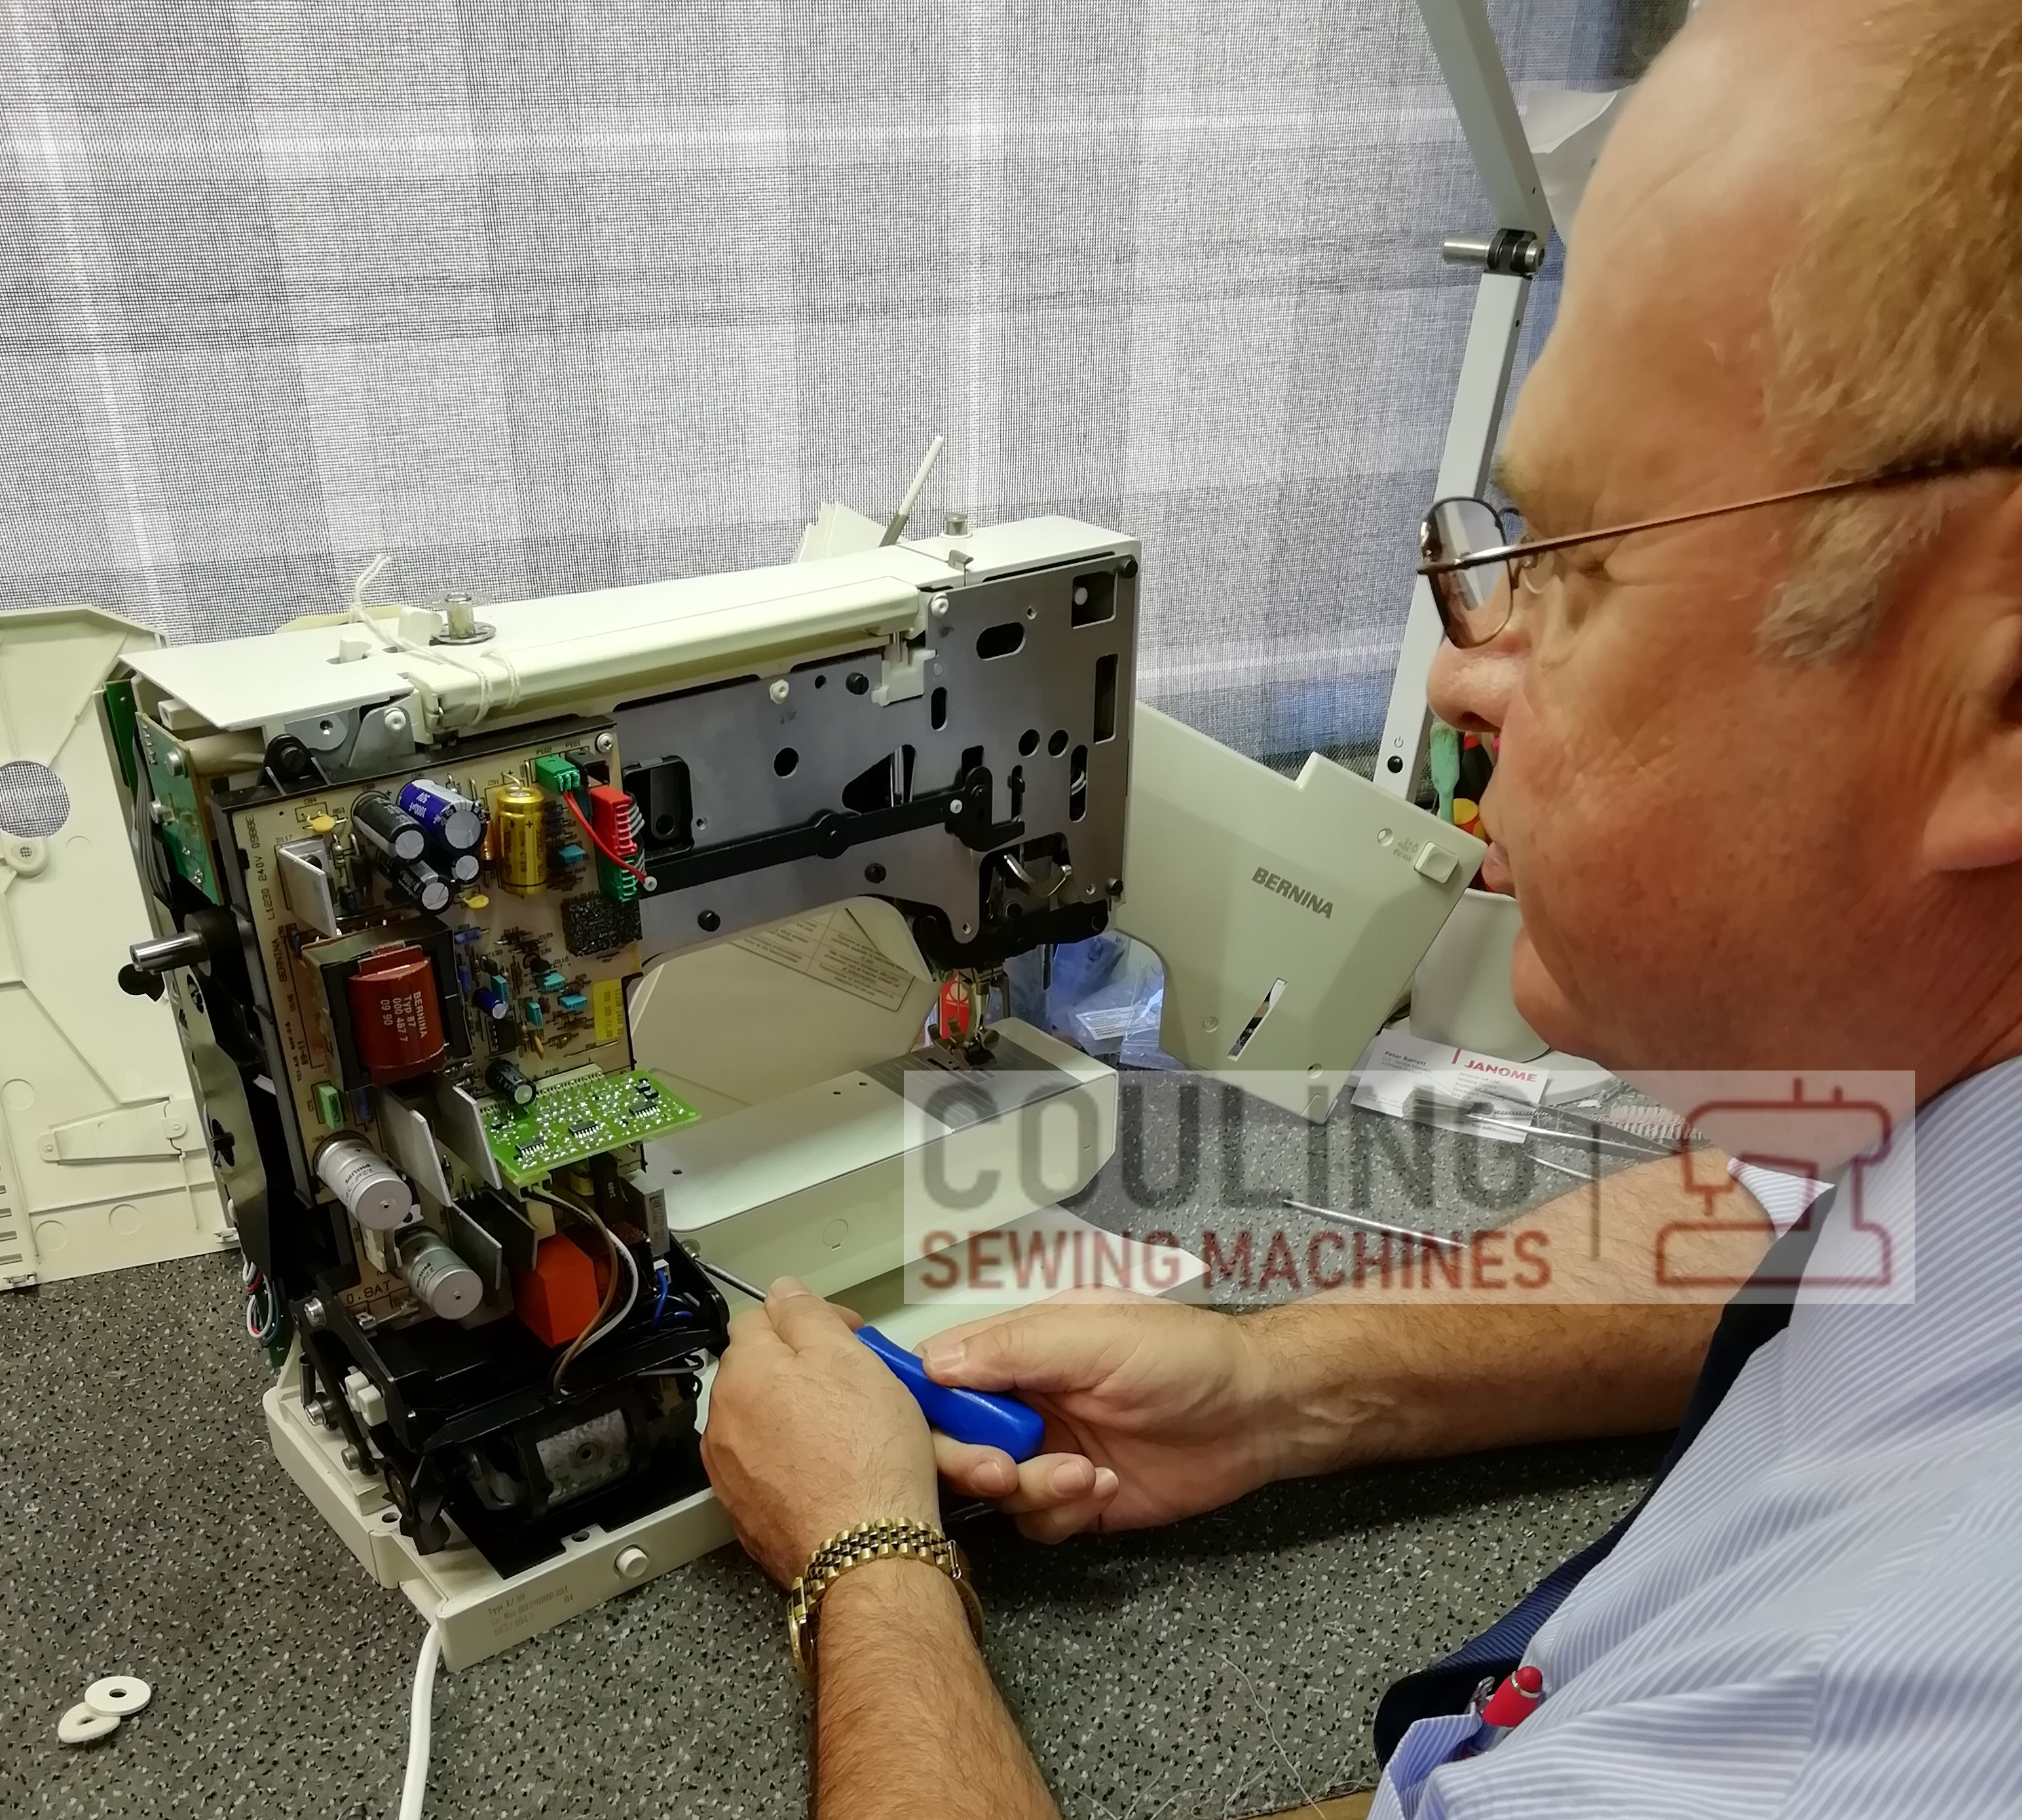 couling-sewing-machine-authorised-swiss-bernina-service-centre-and-parts.jpg